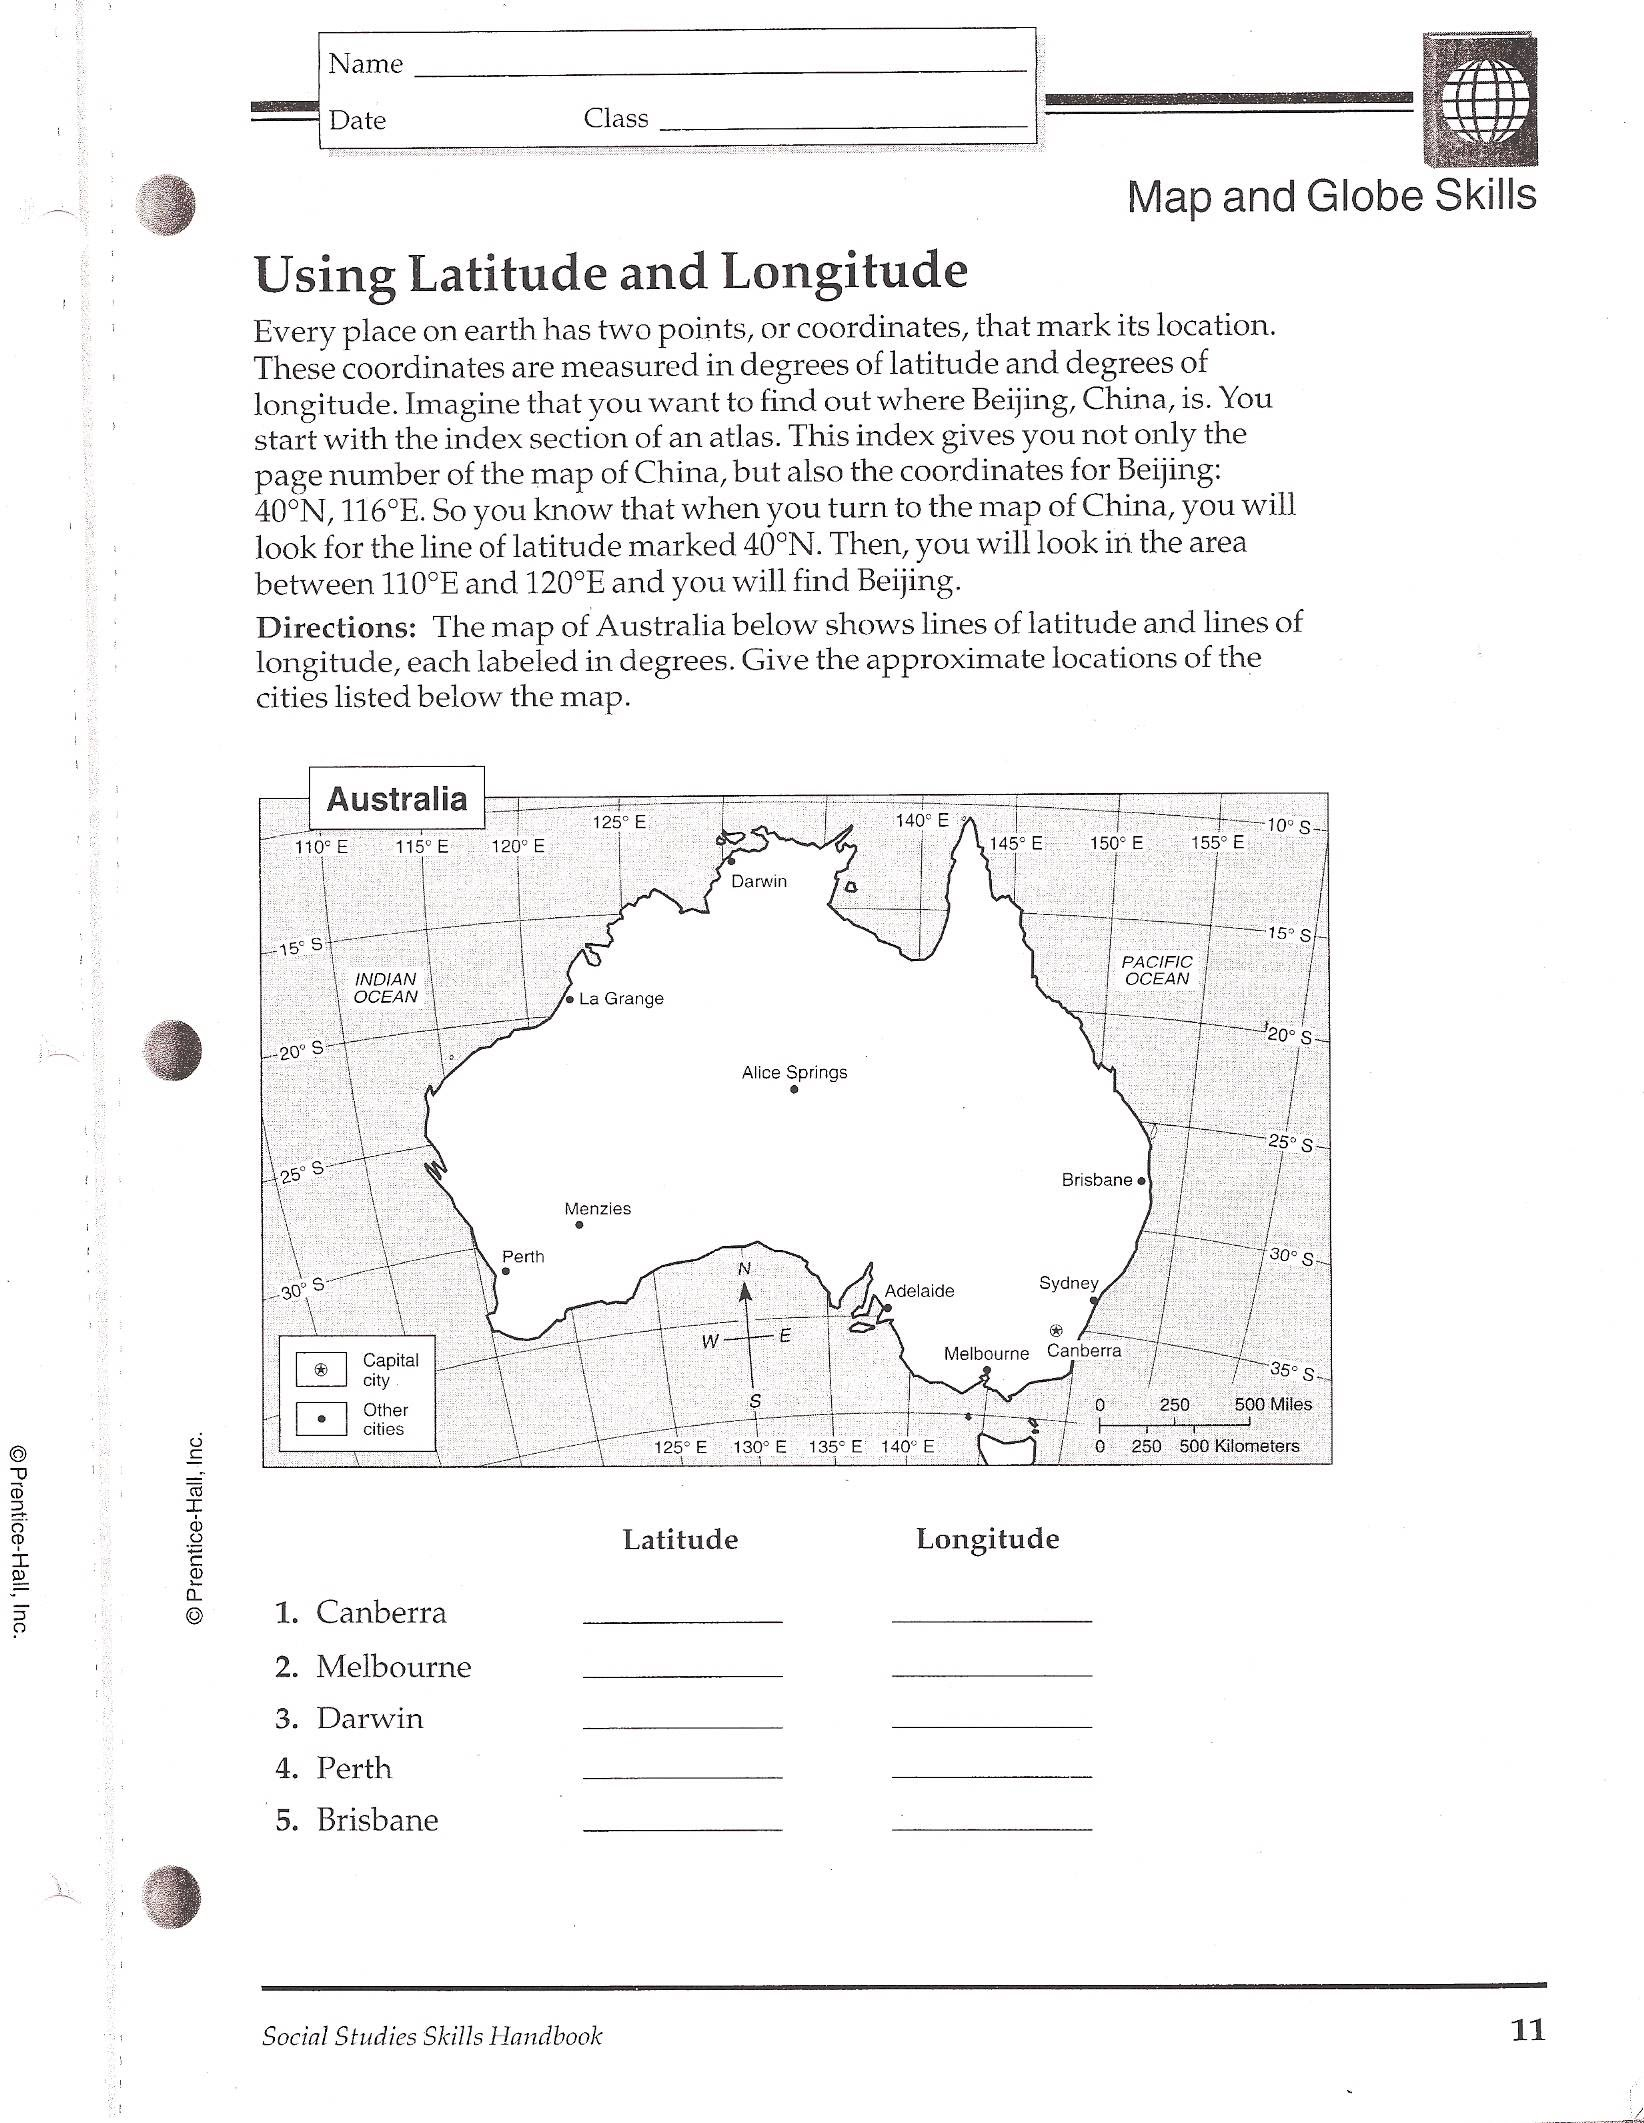 Worksheets Worksheets On Latitude And Longitude mrfordsclass latitude longitudequiz jpg